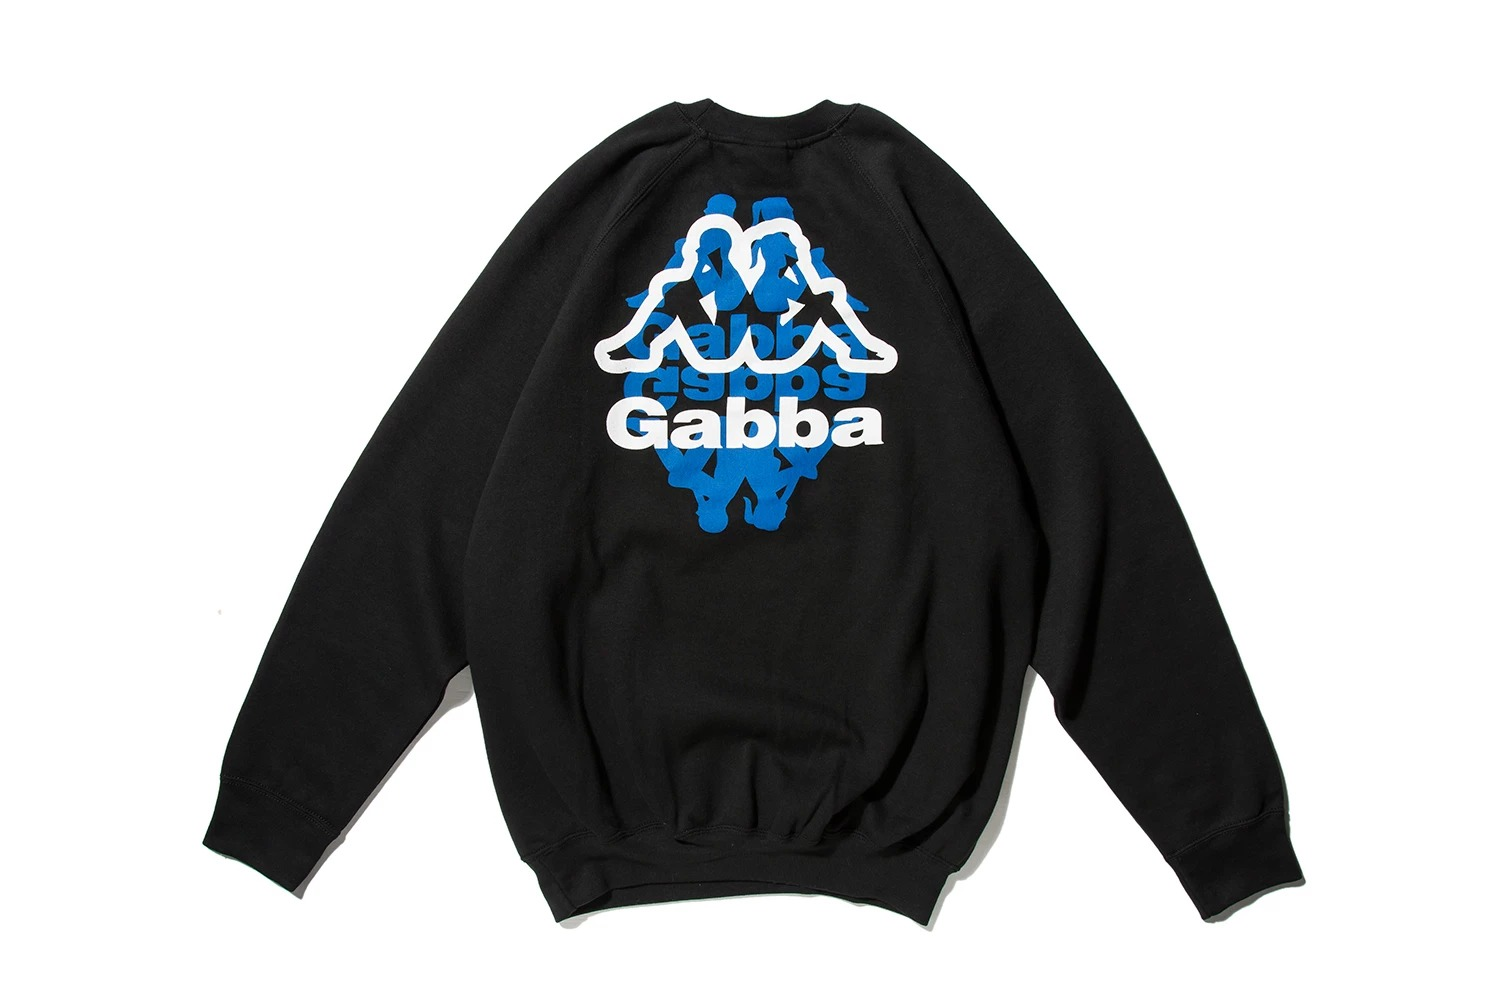 gabber-eleganza-gabba-ltd-for-lab_p1